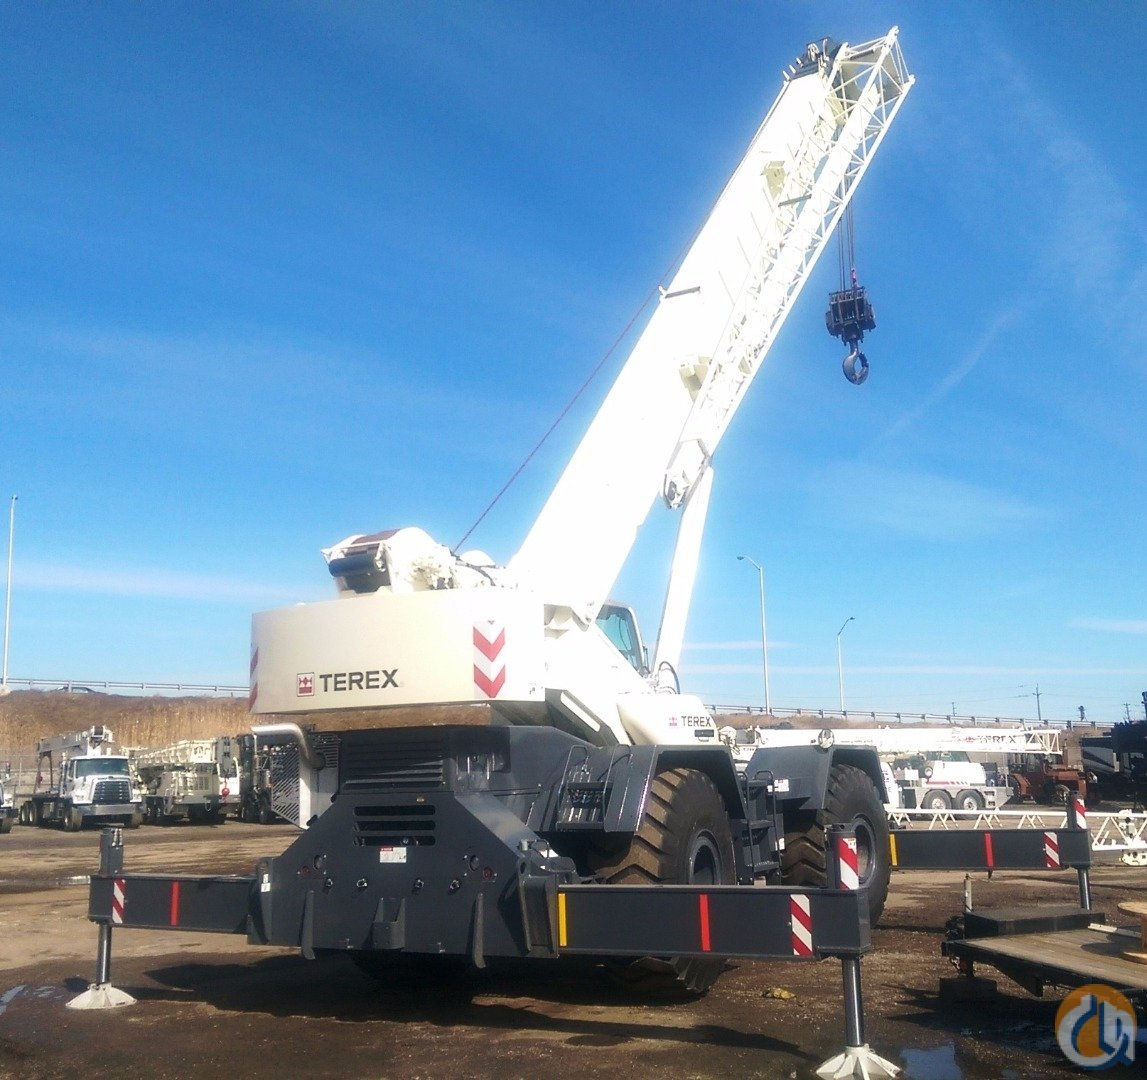 Sold 2014 TEREX RT780 Crane for  in Oakville Ontario on CraneNetwork.com